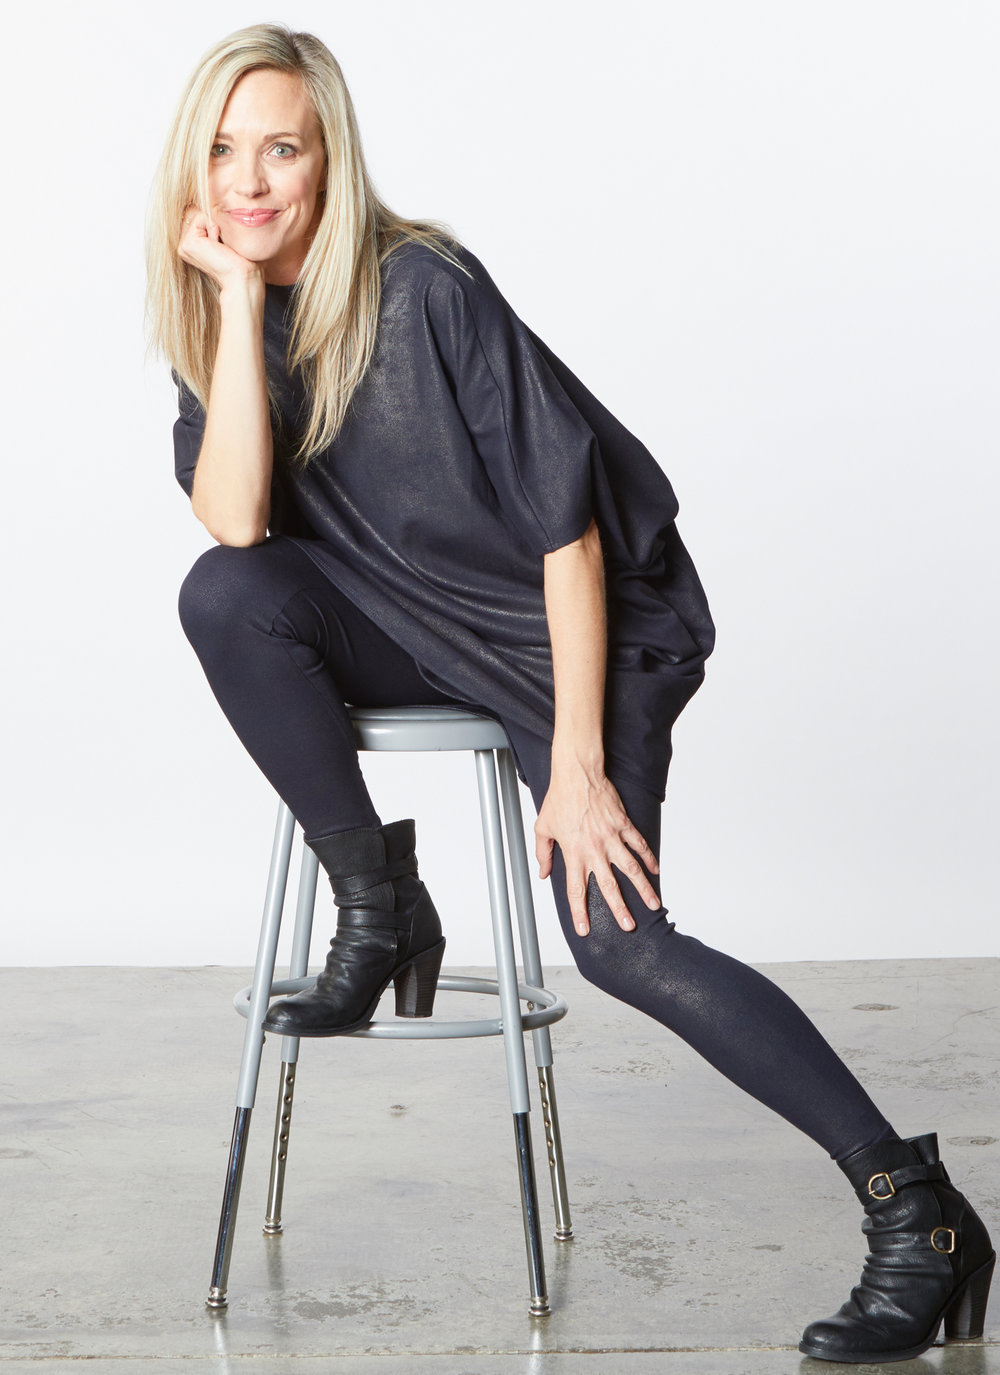 Rachel Tunic, Low Rise Legging in Midnight Milano Laminato